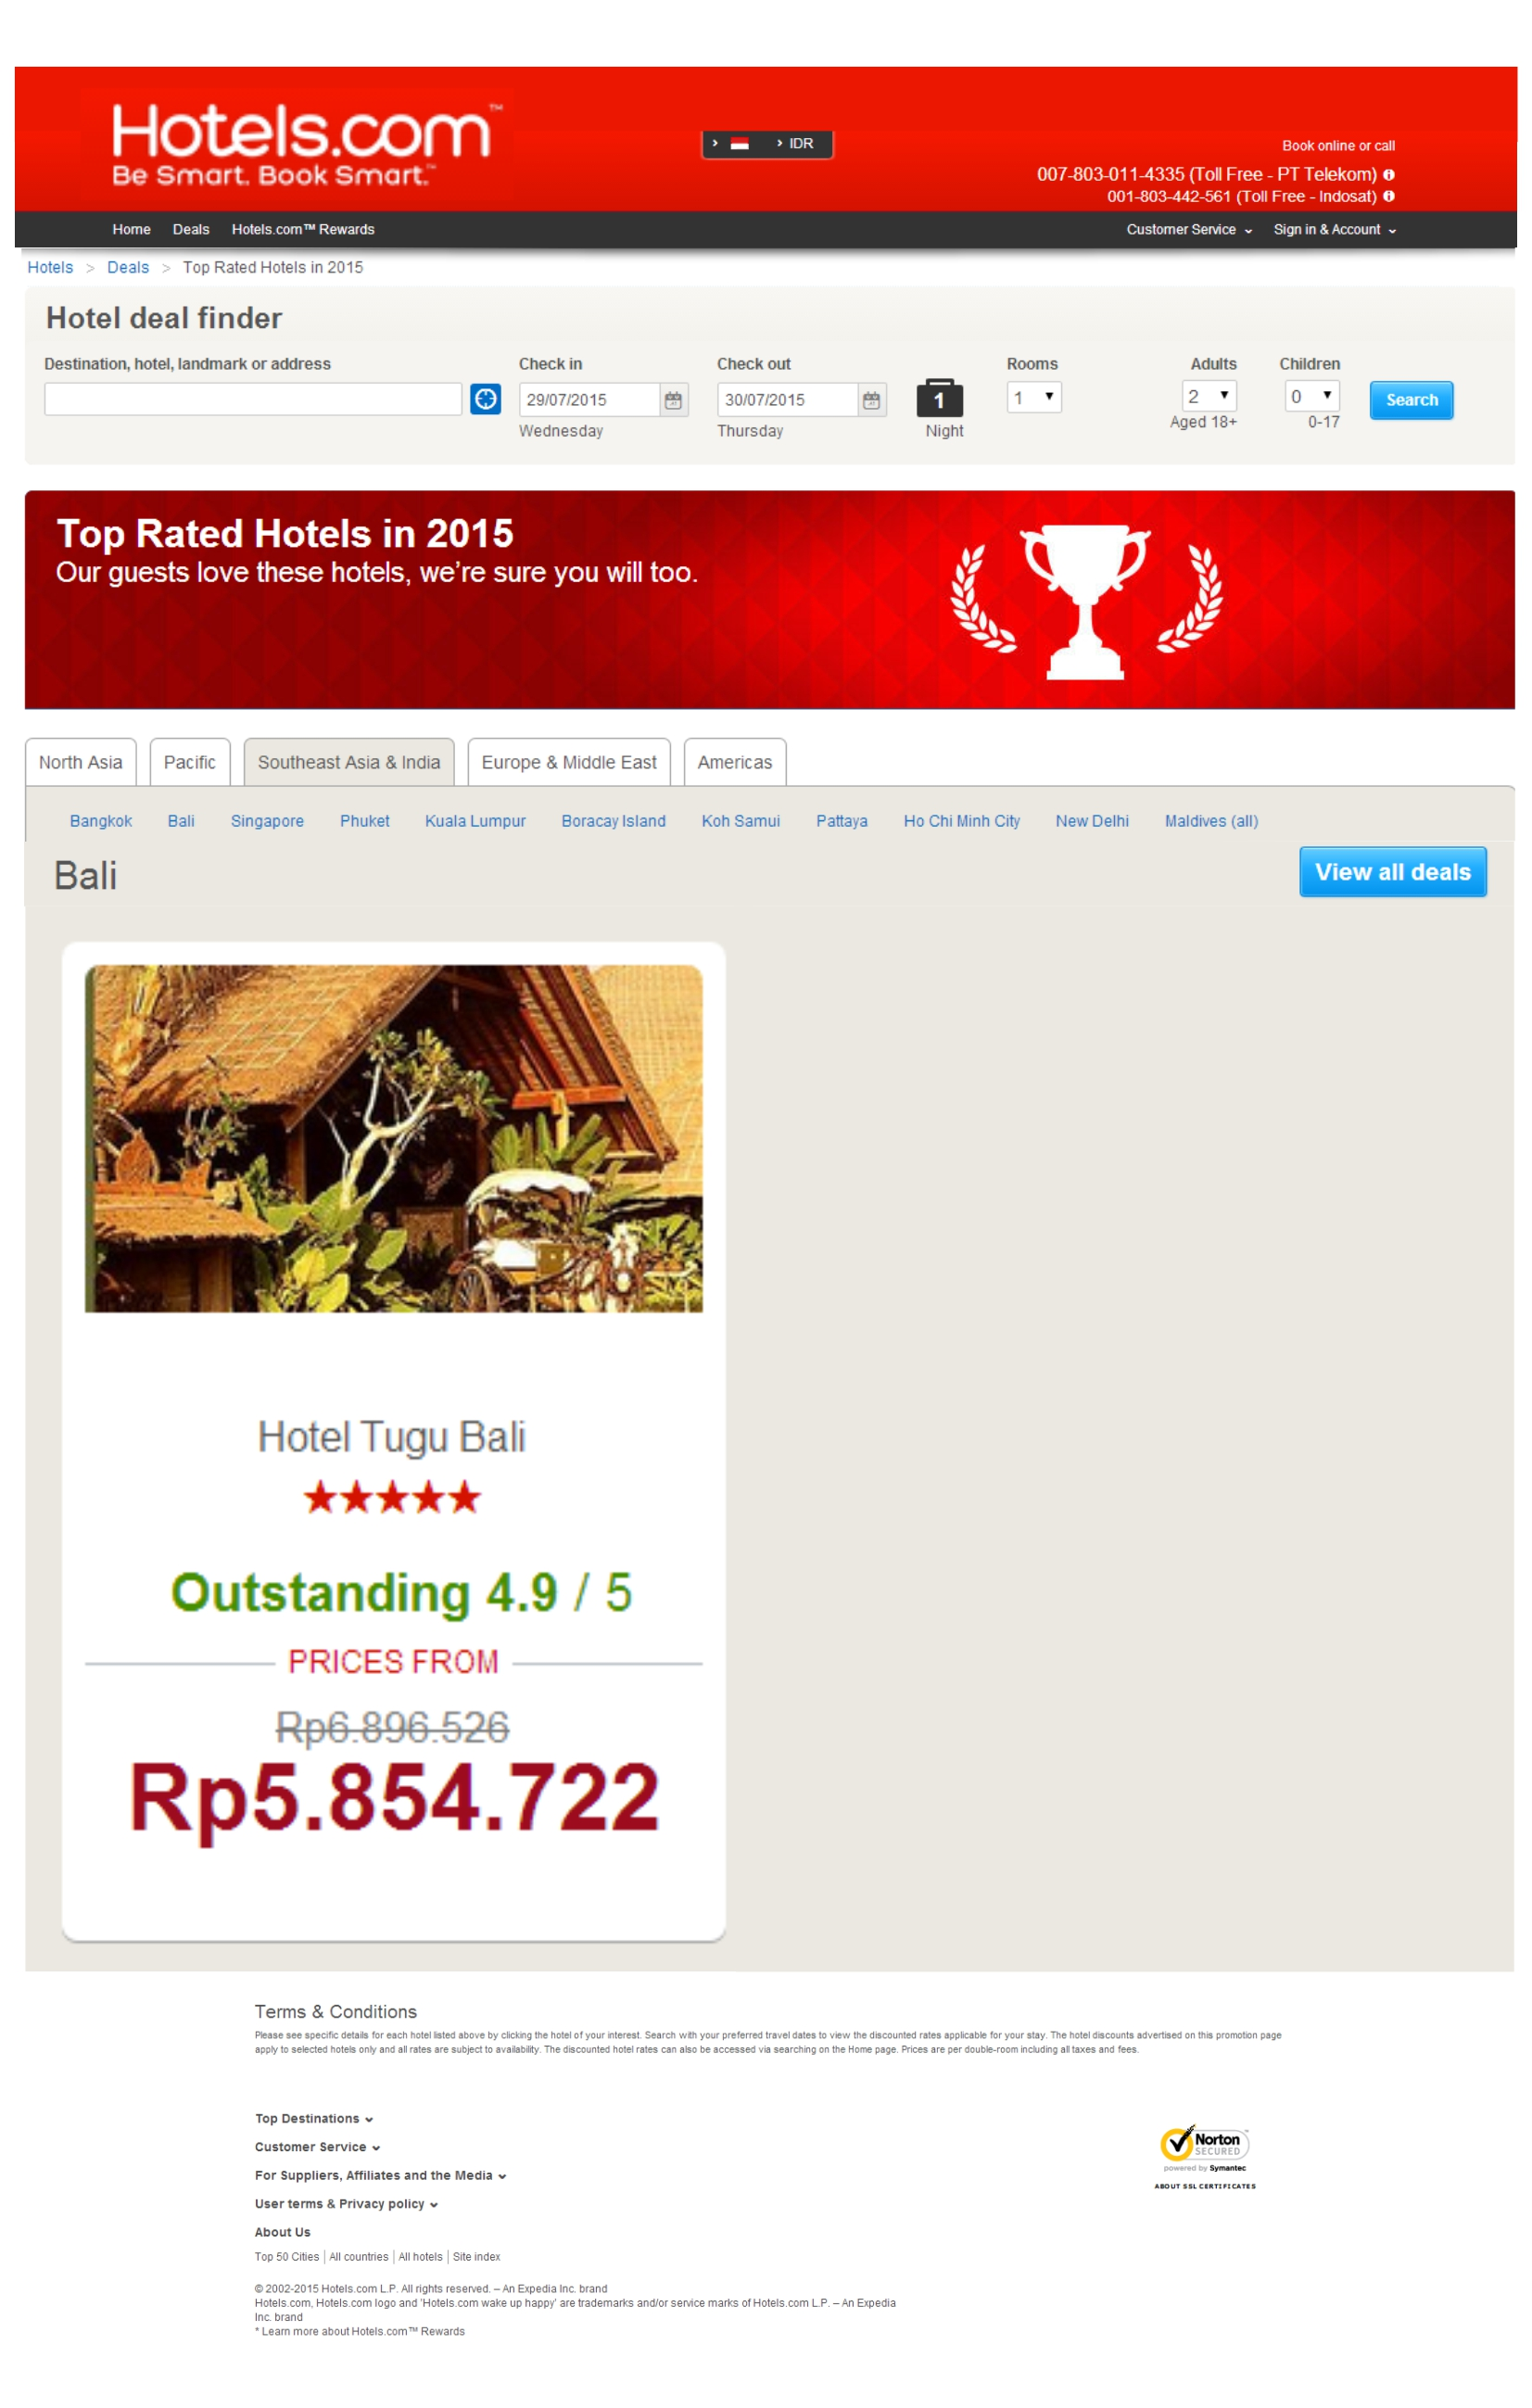 Hotel Tugu Bali as one of the Top Rated Hotels in 2015 - www.hotels.com